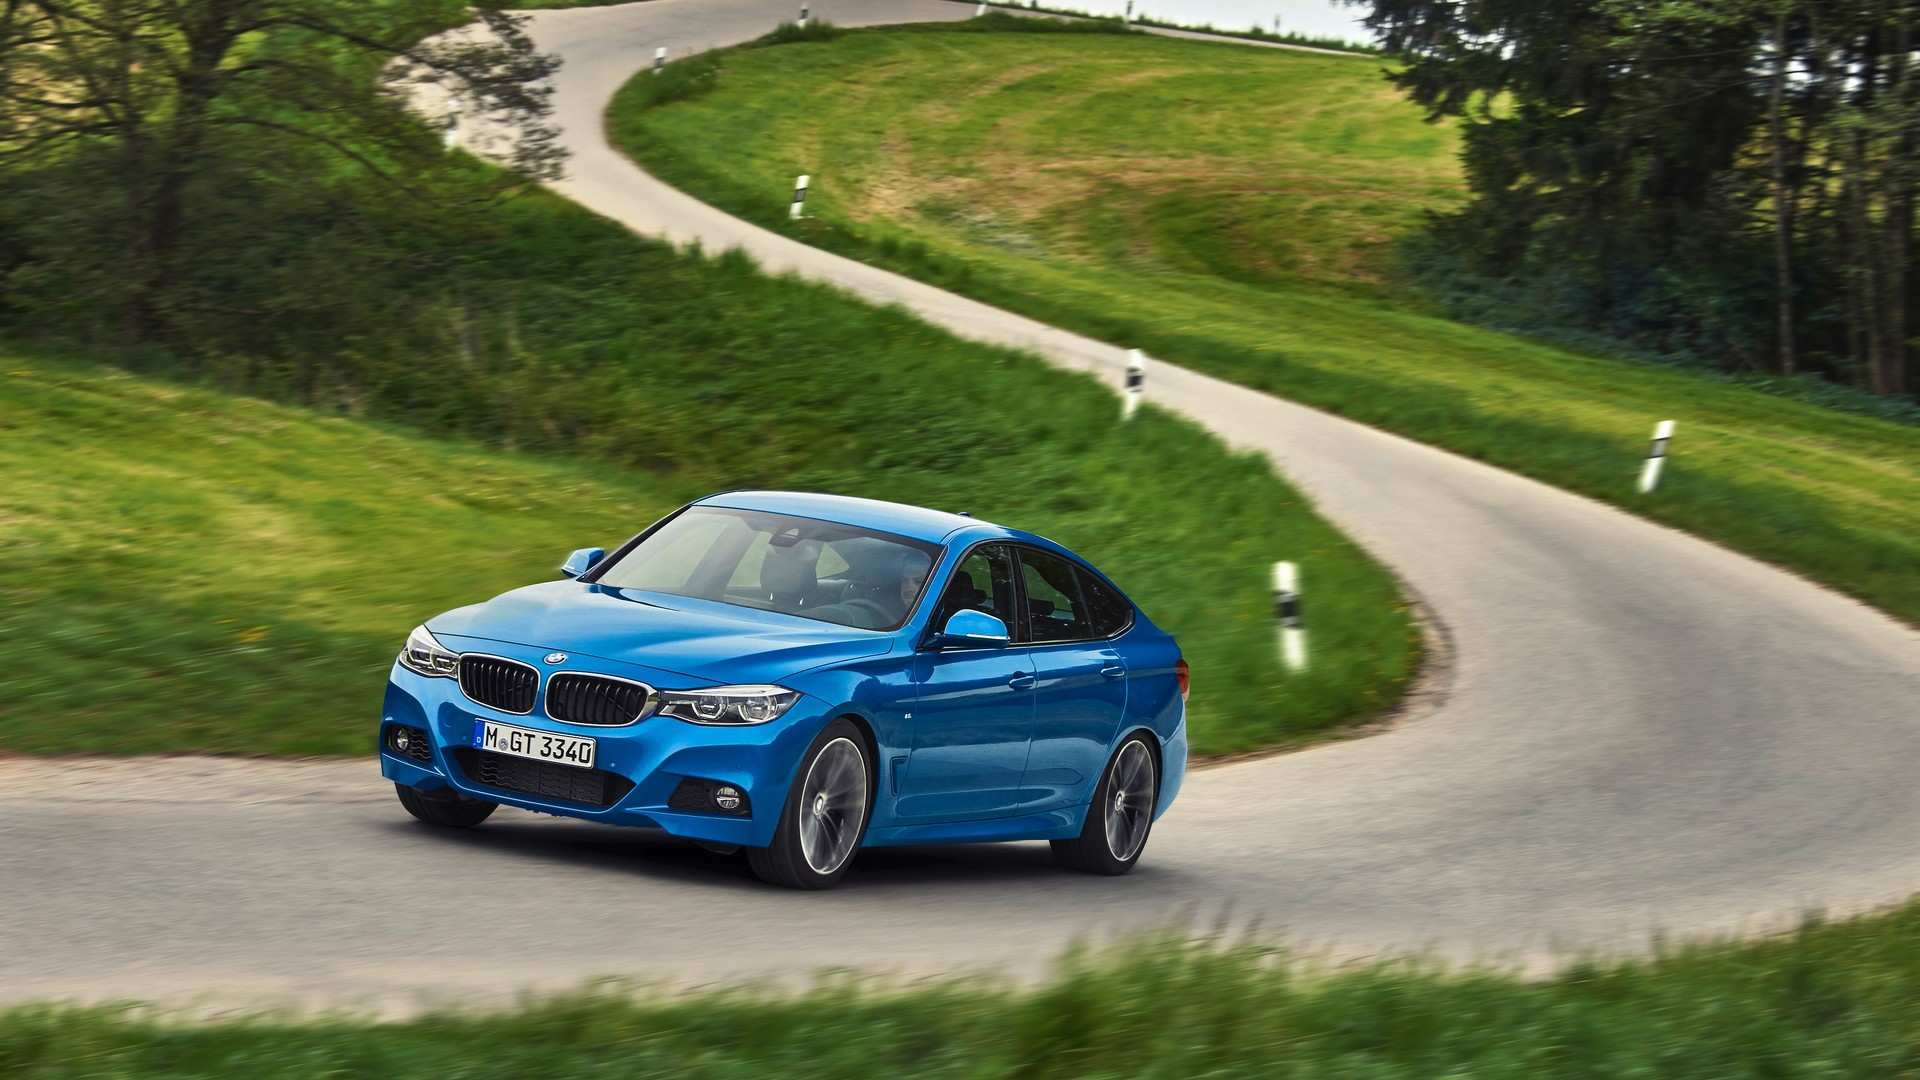 25 Great Bmw 3 Gt 2020 Photos for Bmw 3 Gt 2020